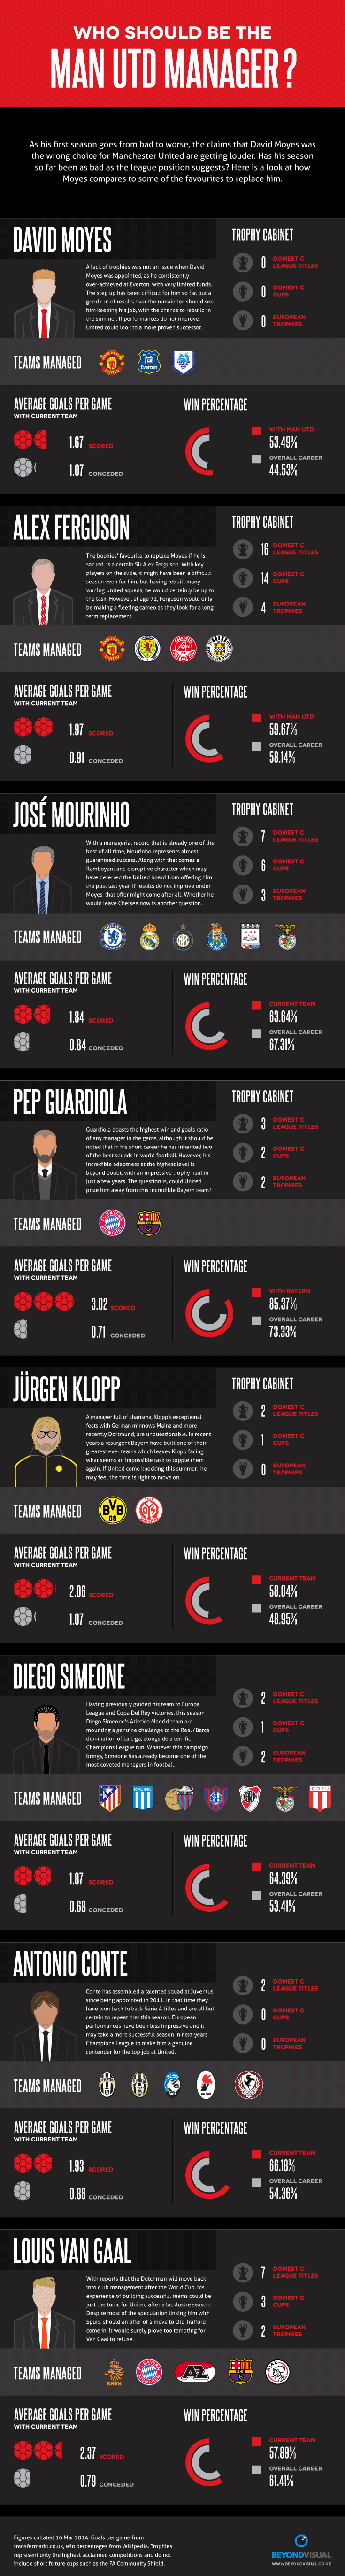 Who should be Man Utd Manager Infographic